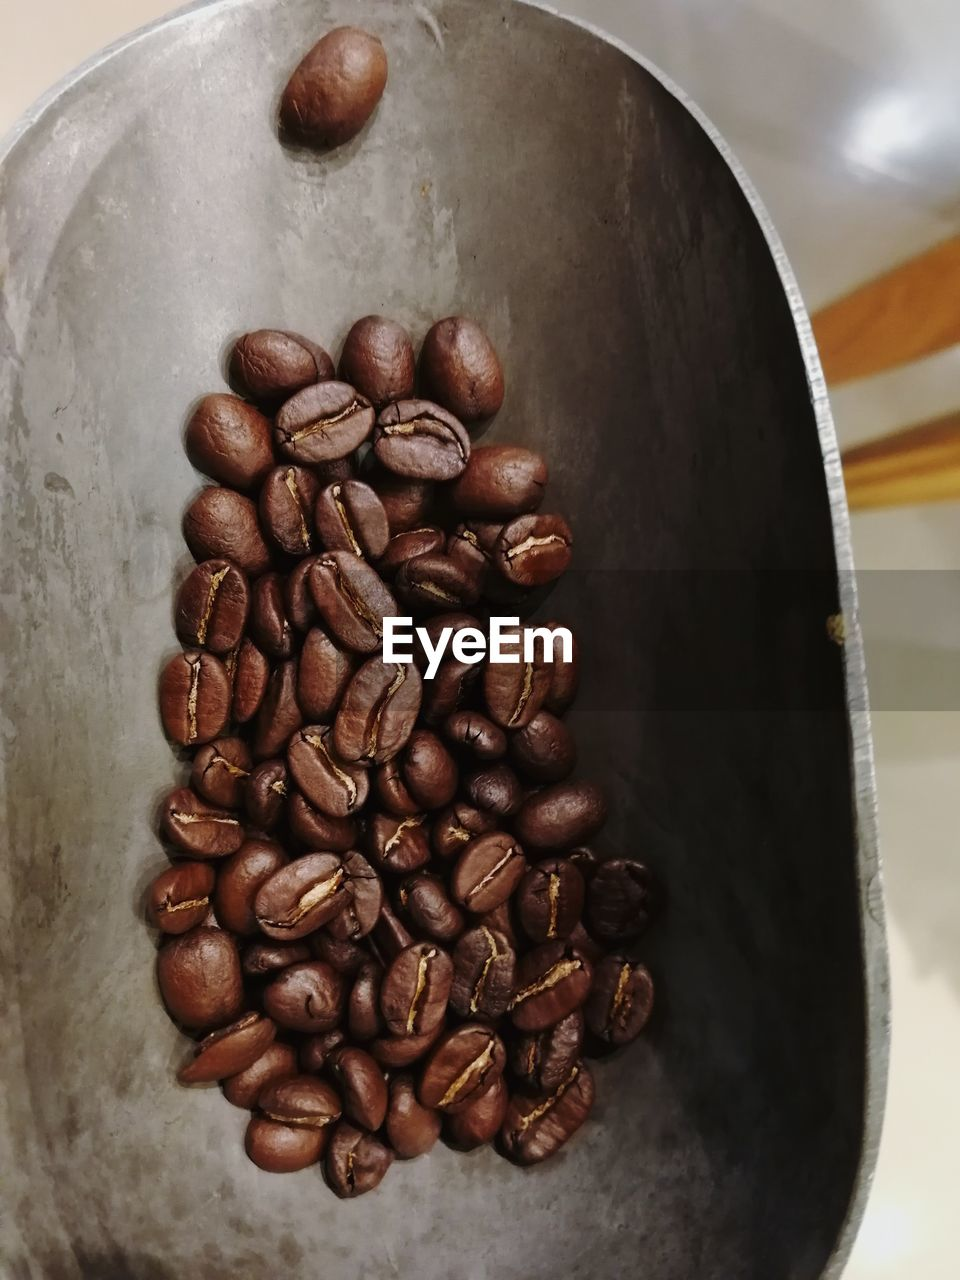 food and drink, coffee, coffee - drink, roasted coffee bean, food, indoors, still life, brown, freshness, large group of objects, close-up, no people, high angle view, coffee bean, table, caffeine, roasted, drink, directly above, refreshment